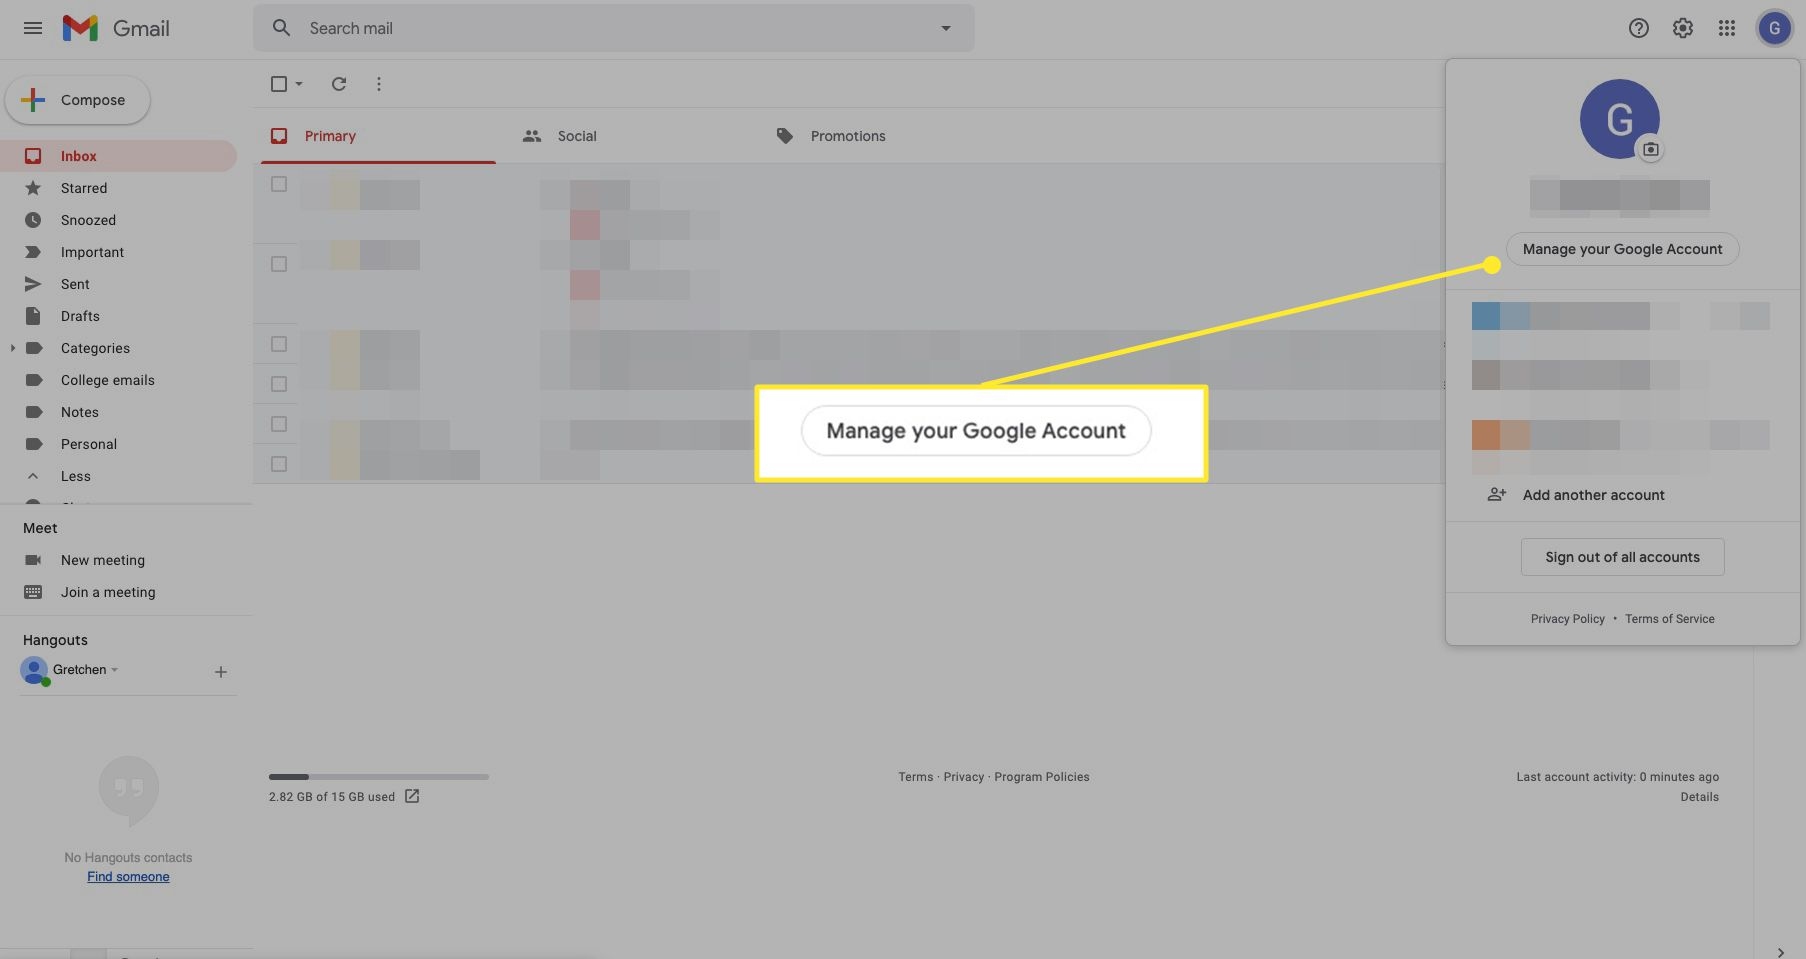 Gmail settings with Manage Your Google Account highlighted